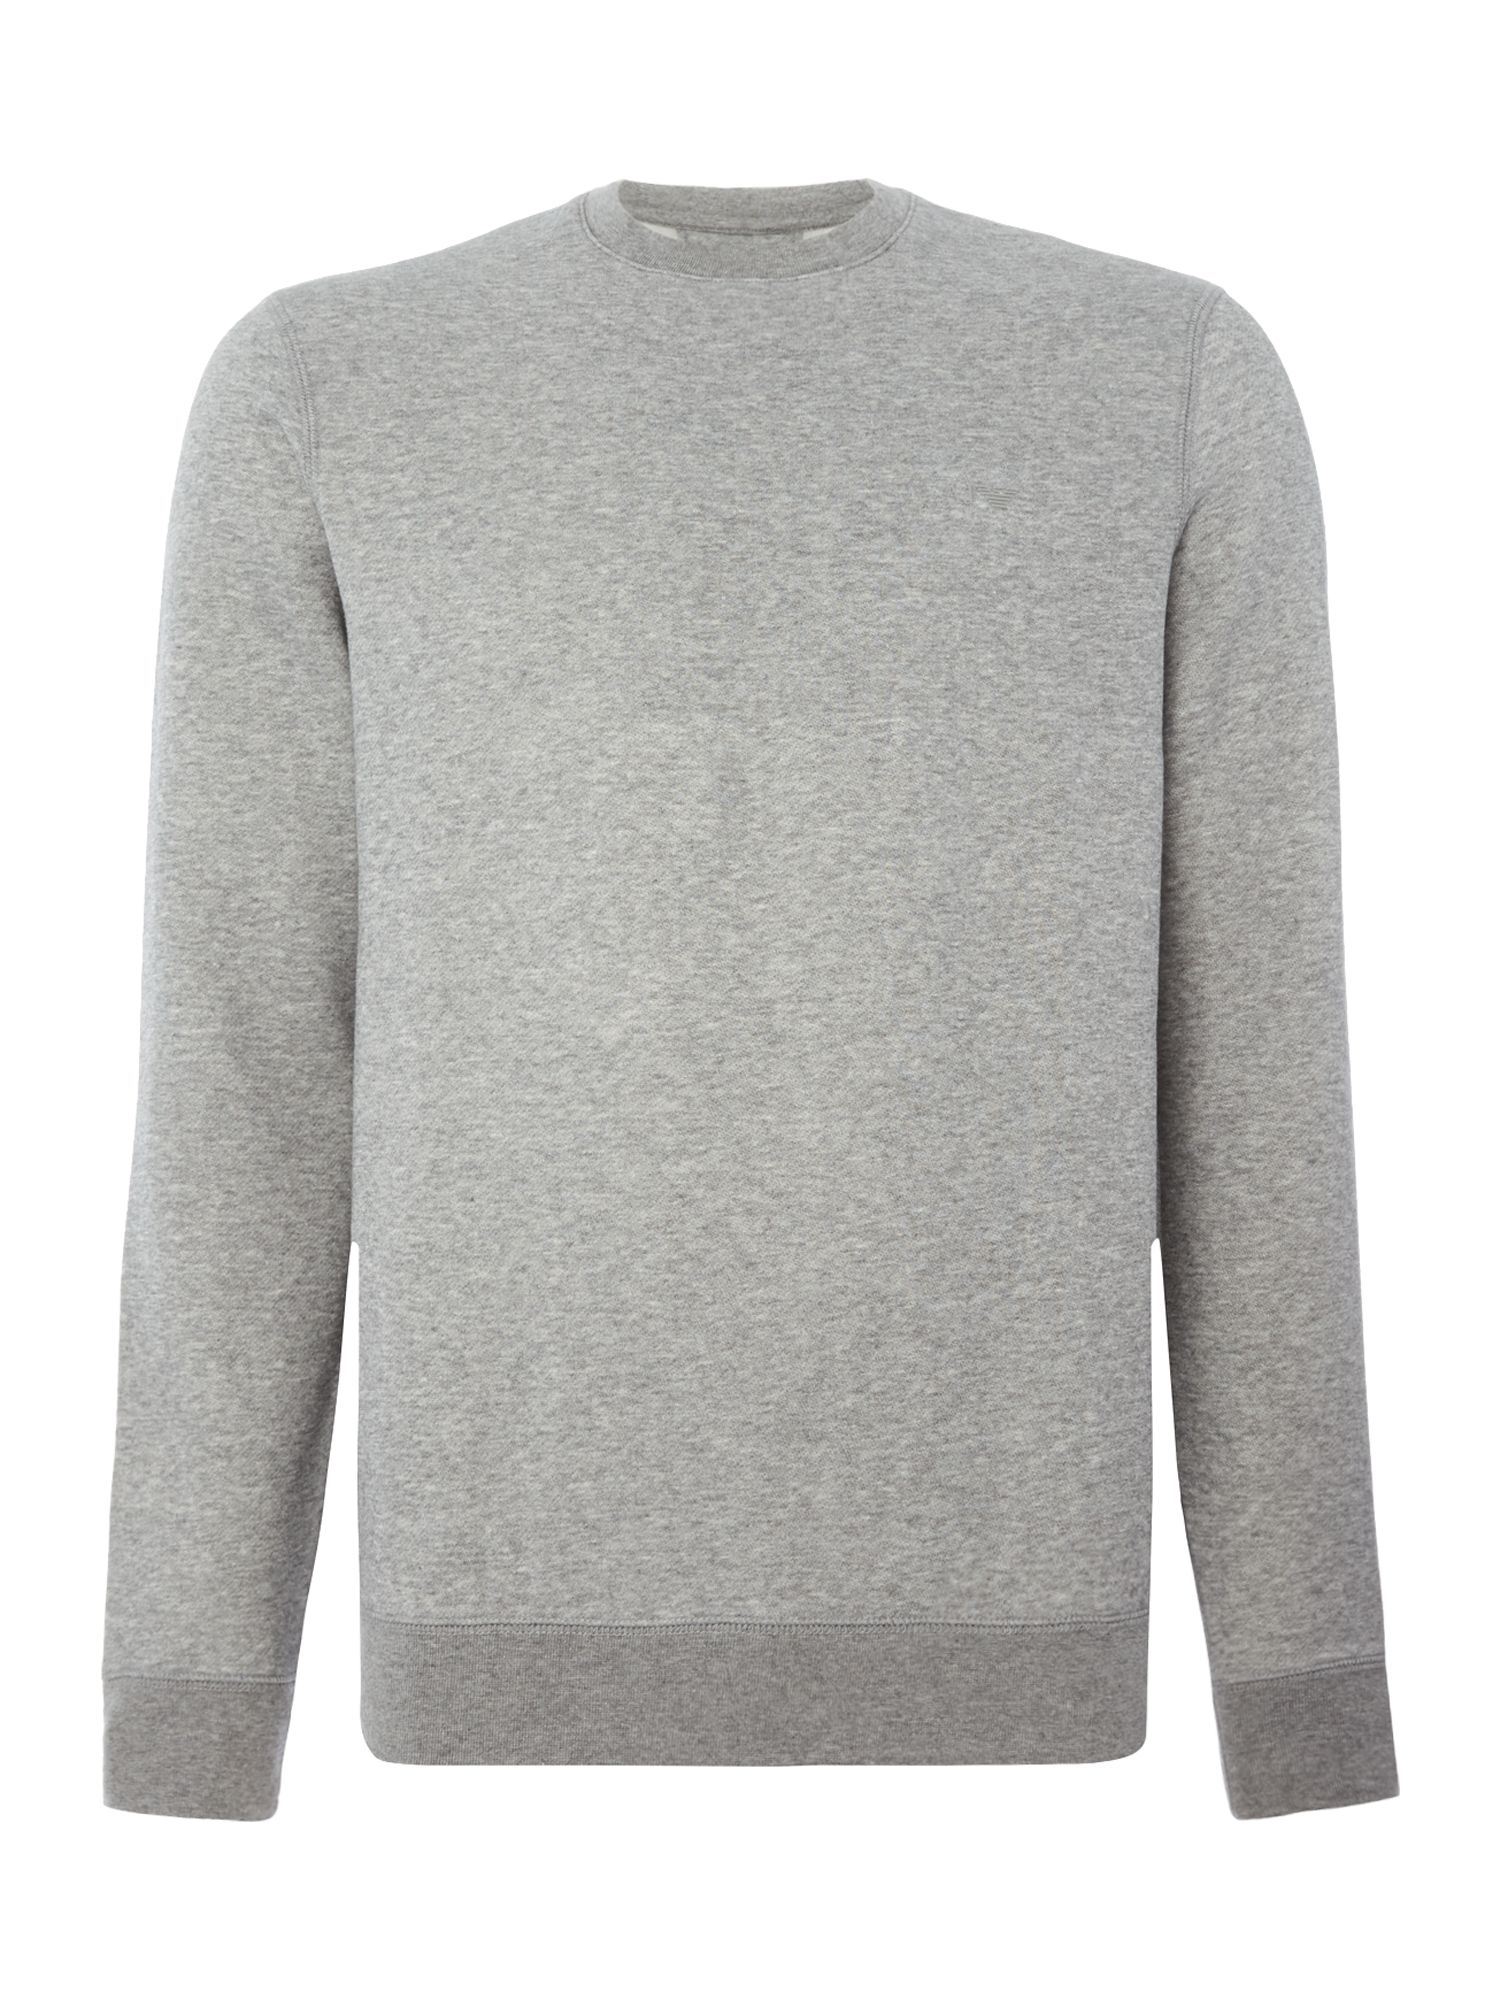 Men's Armani Jeans Crew neck small logo sweat top, Grey